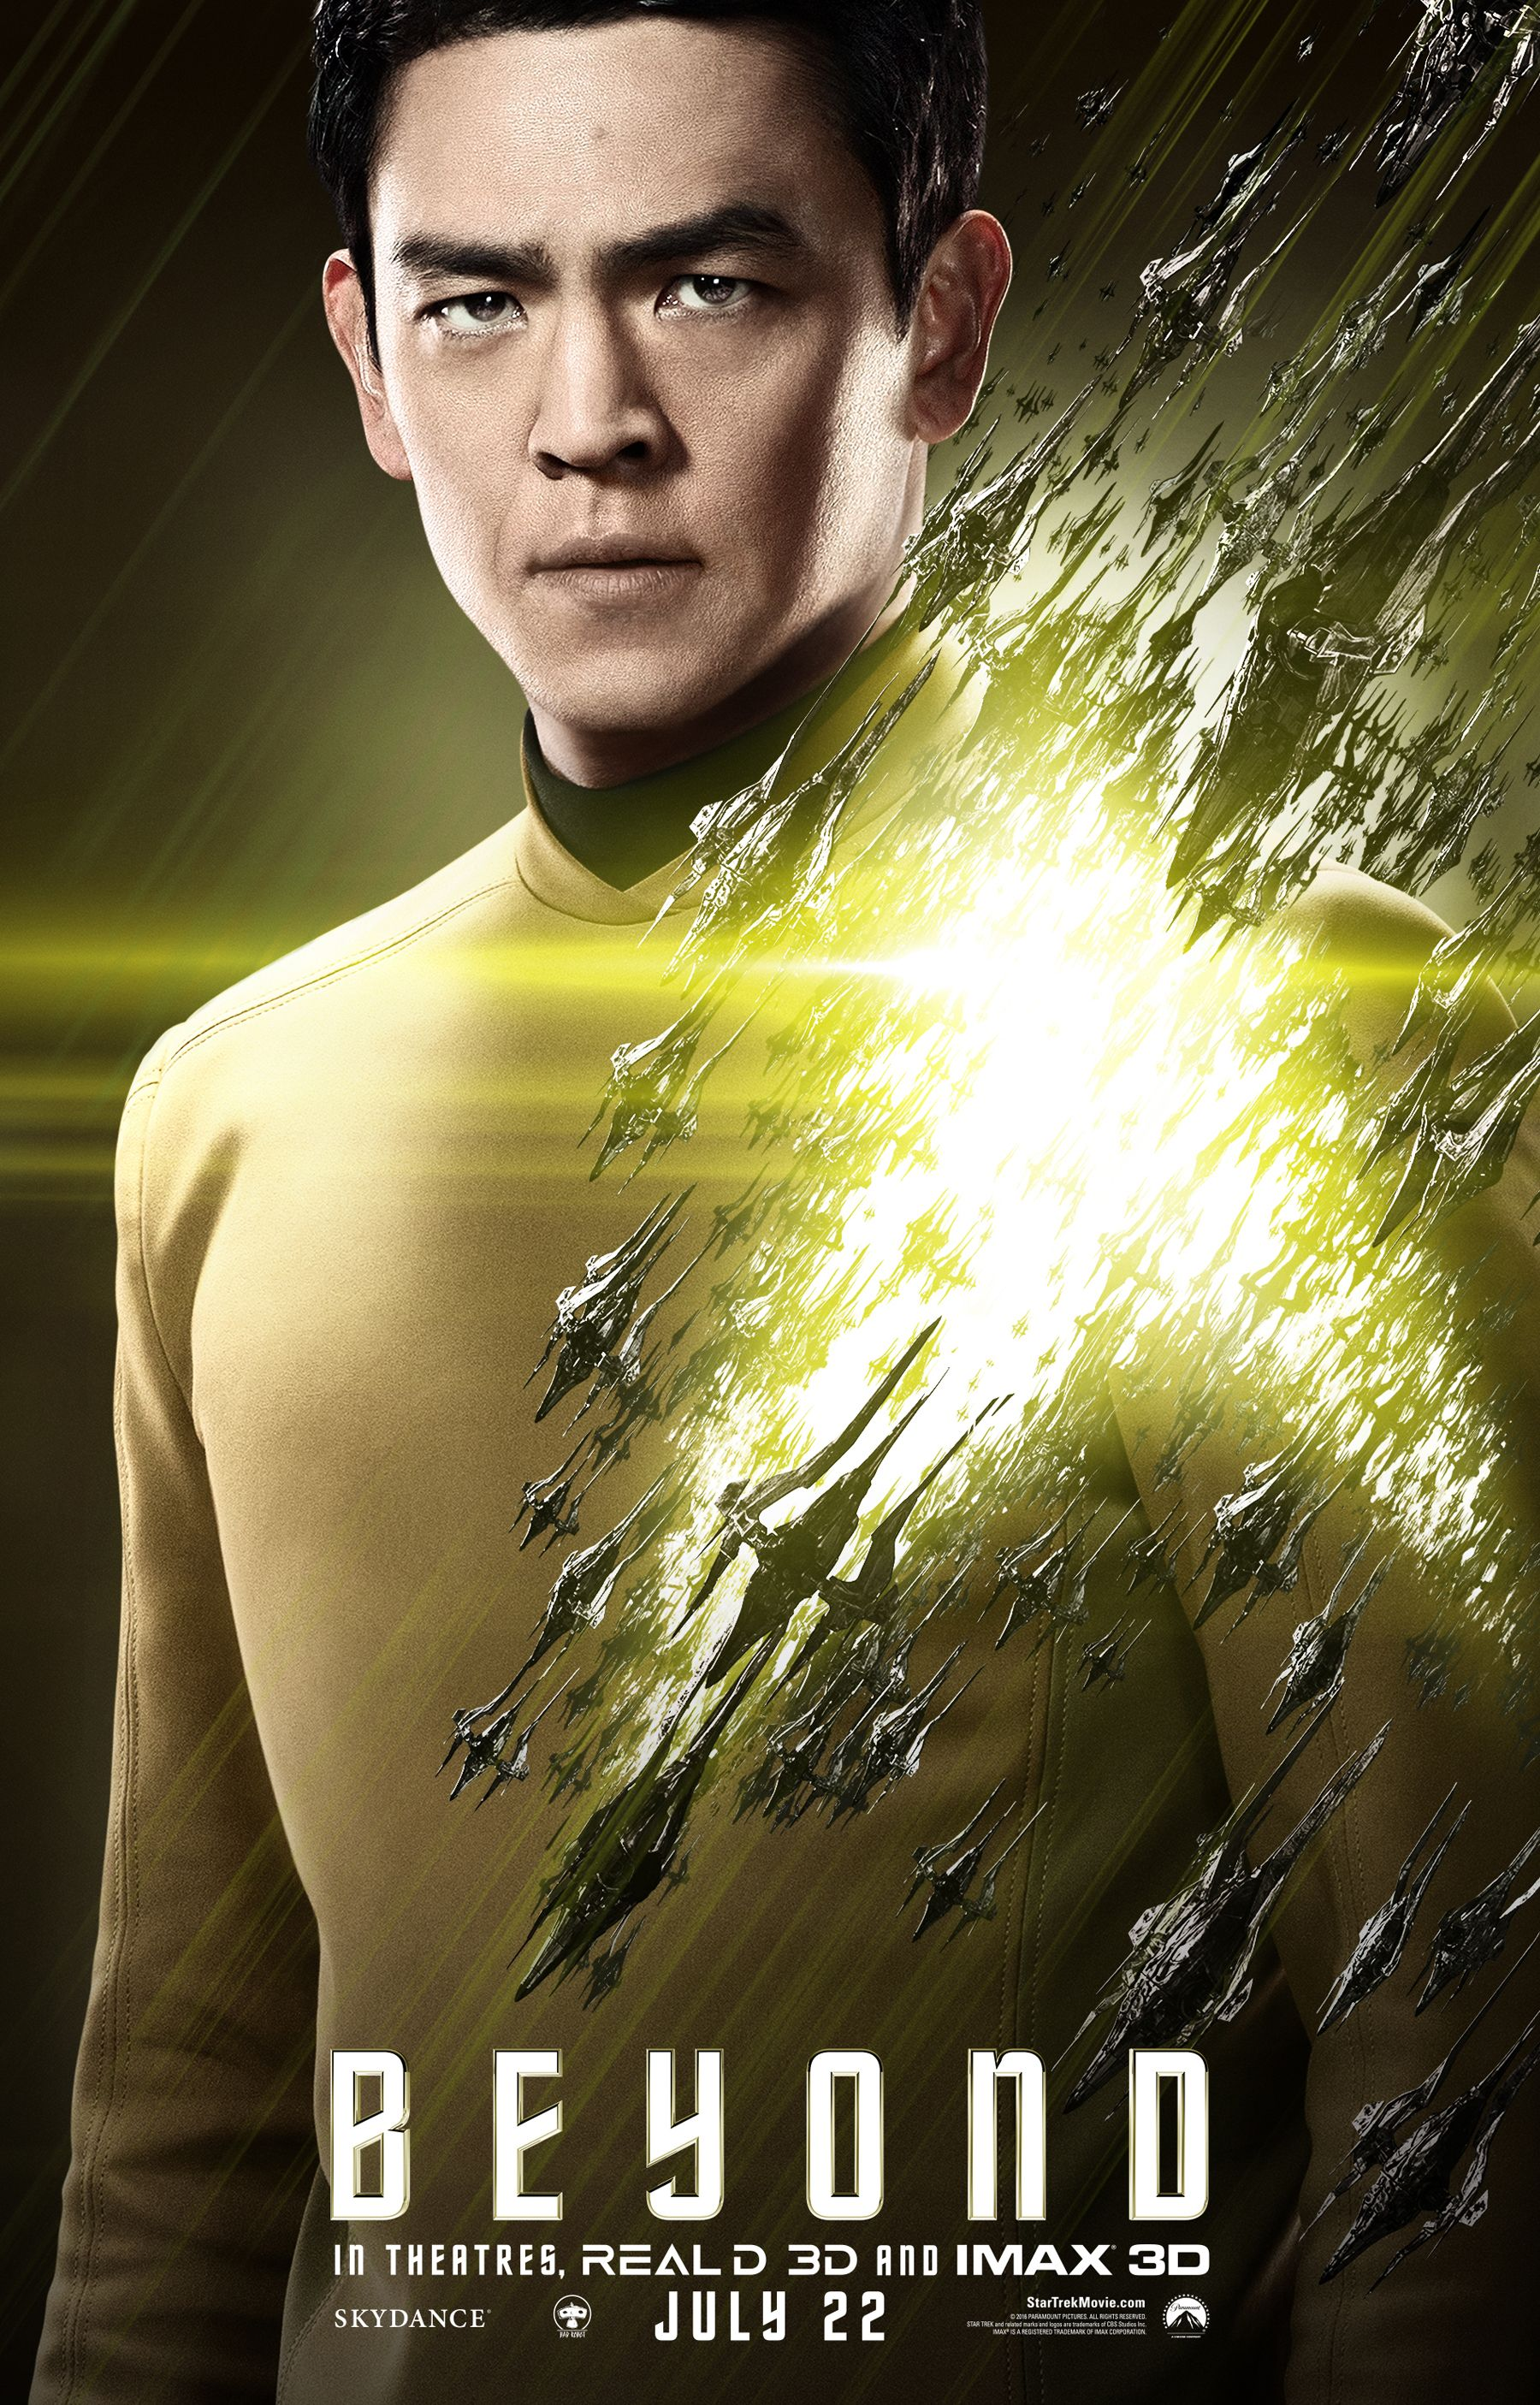 Star Trek Beyond 2016 Movie Posters With Images Star Trek